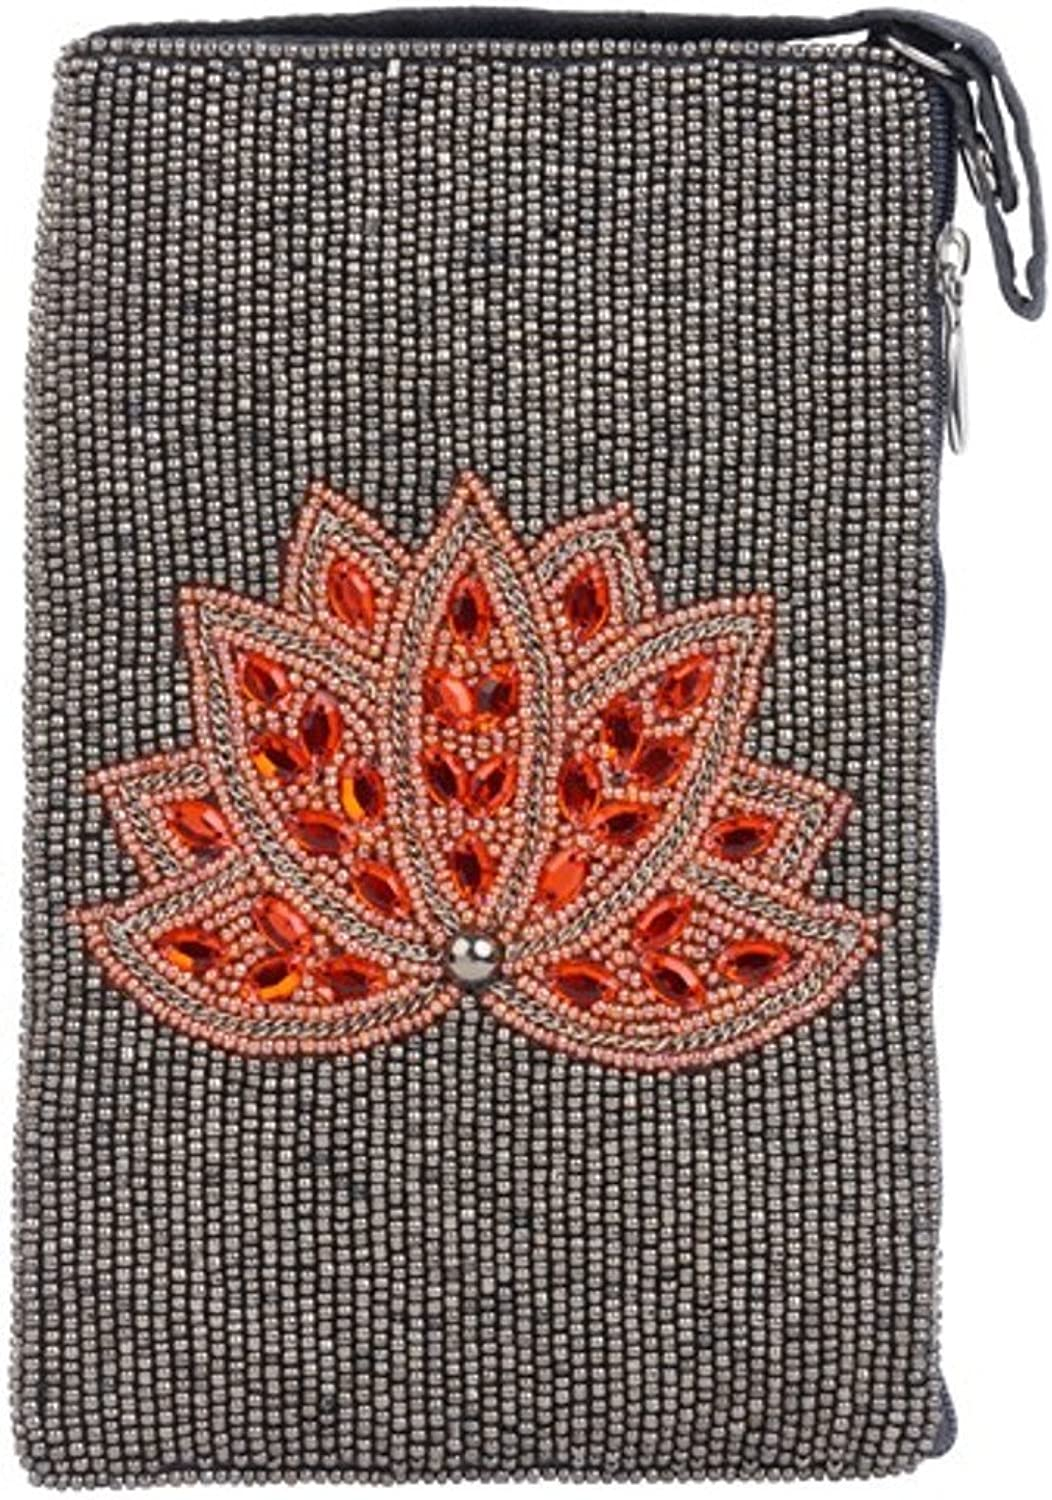 Bamboo Trading Company Cell Phone or Club Bag, Lotus Flame